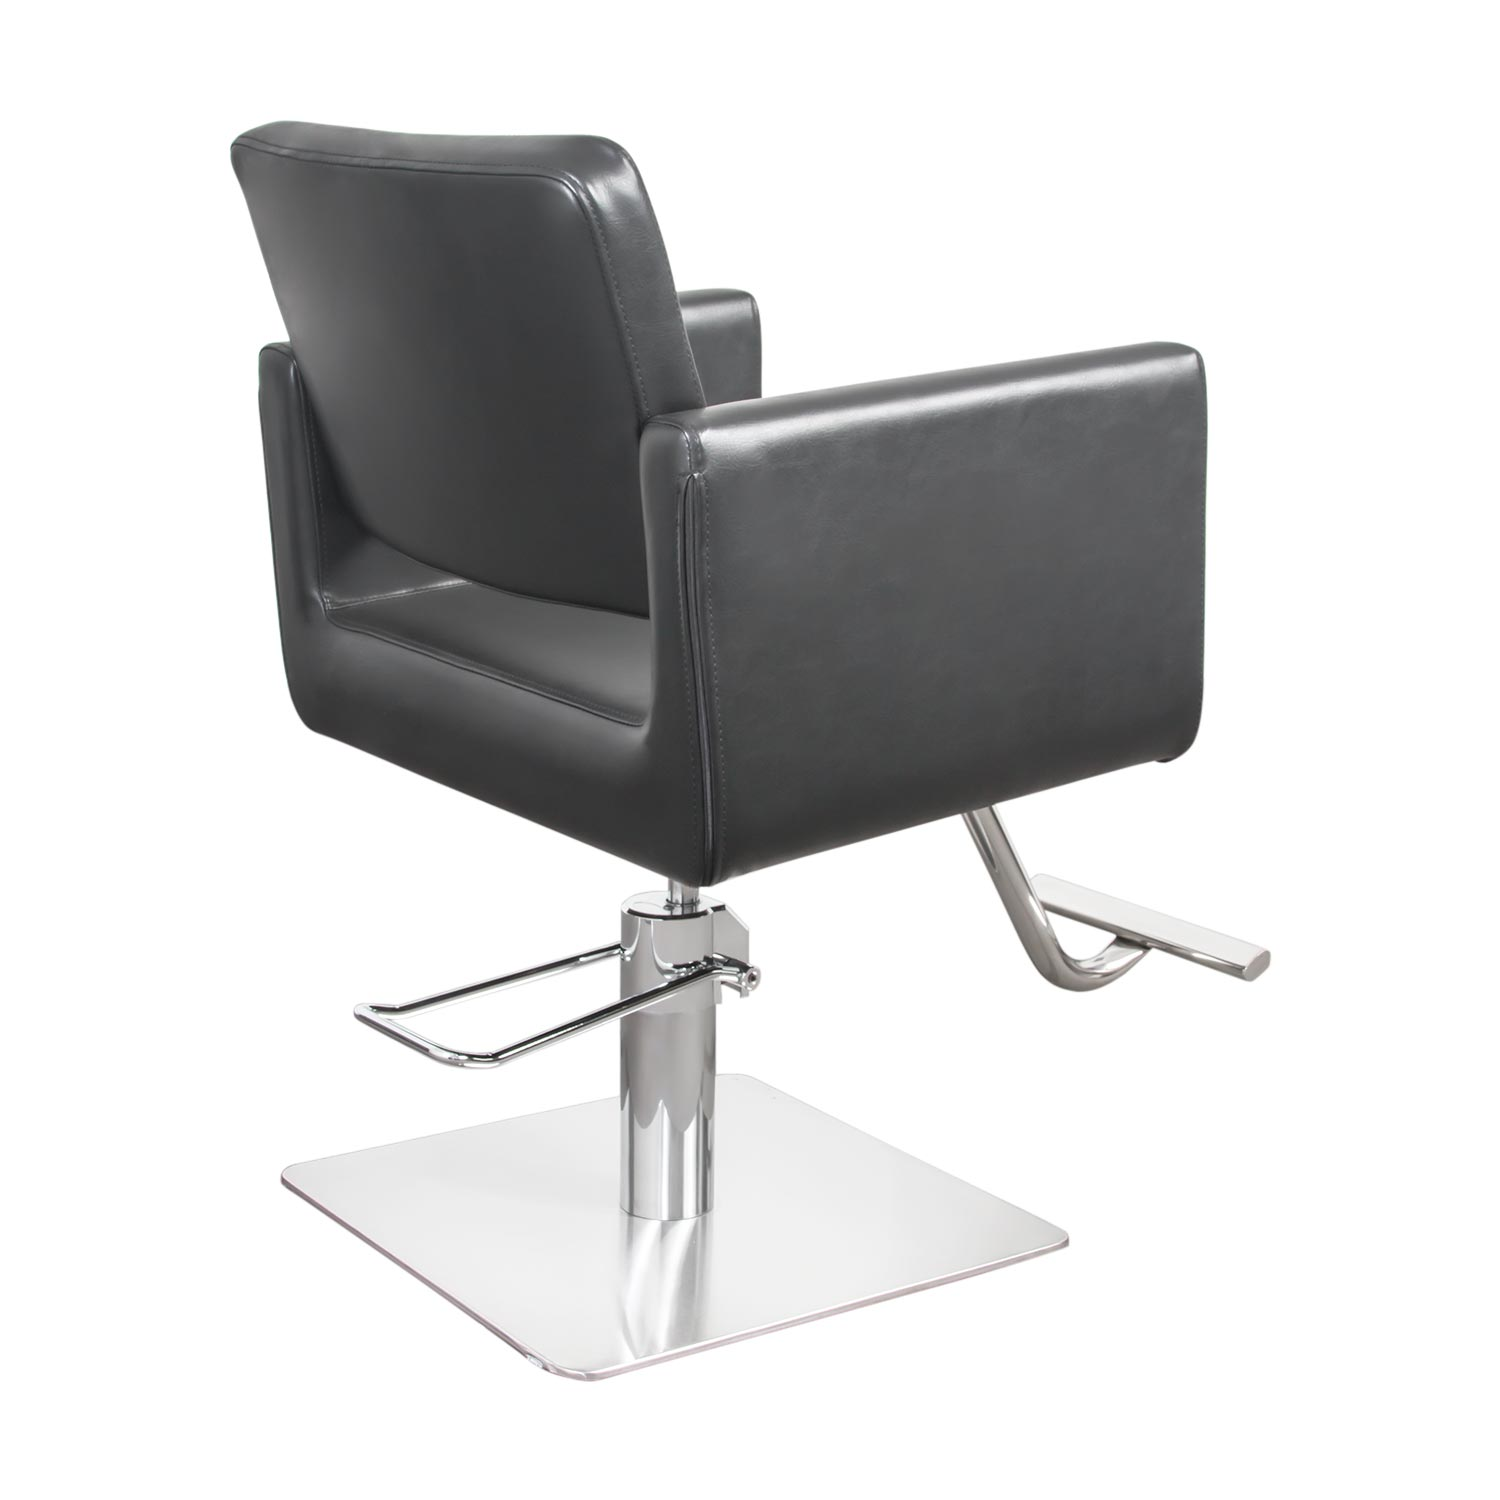 Maxton Square Stylist Chair alternative product image 6